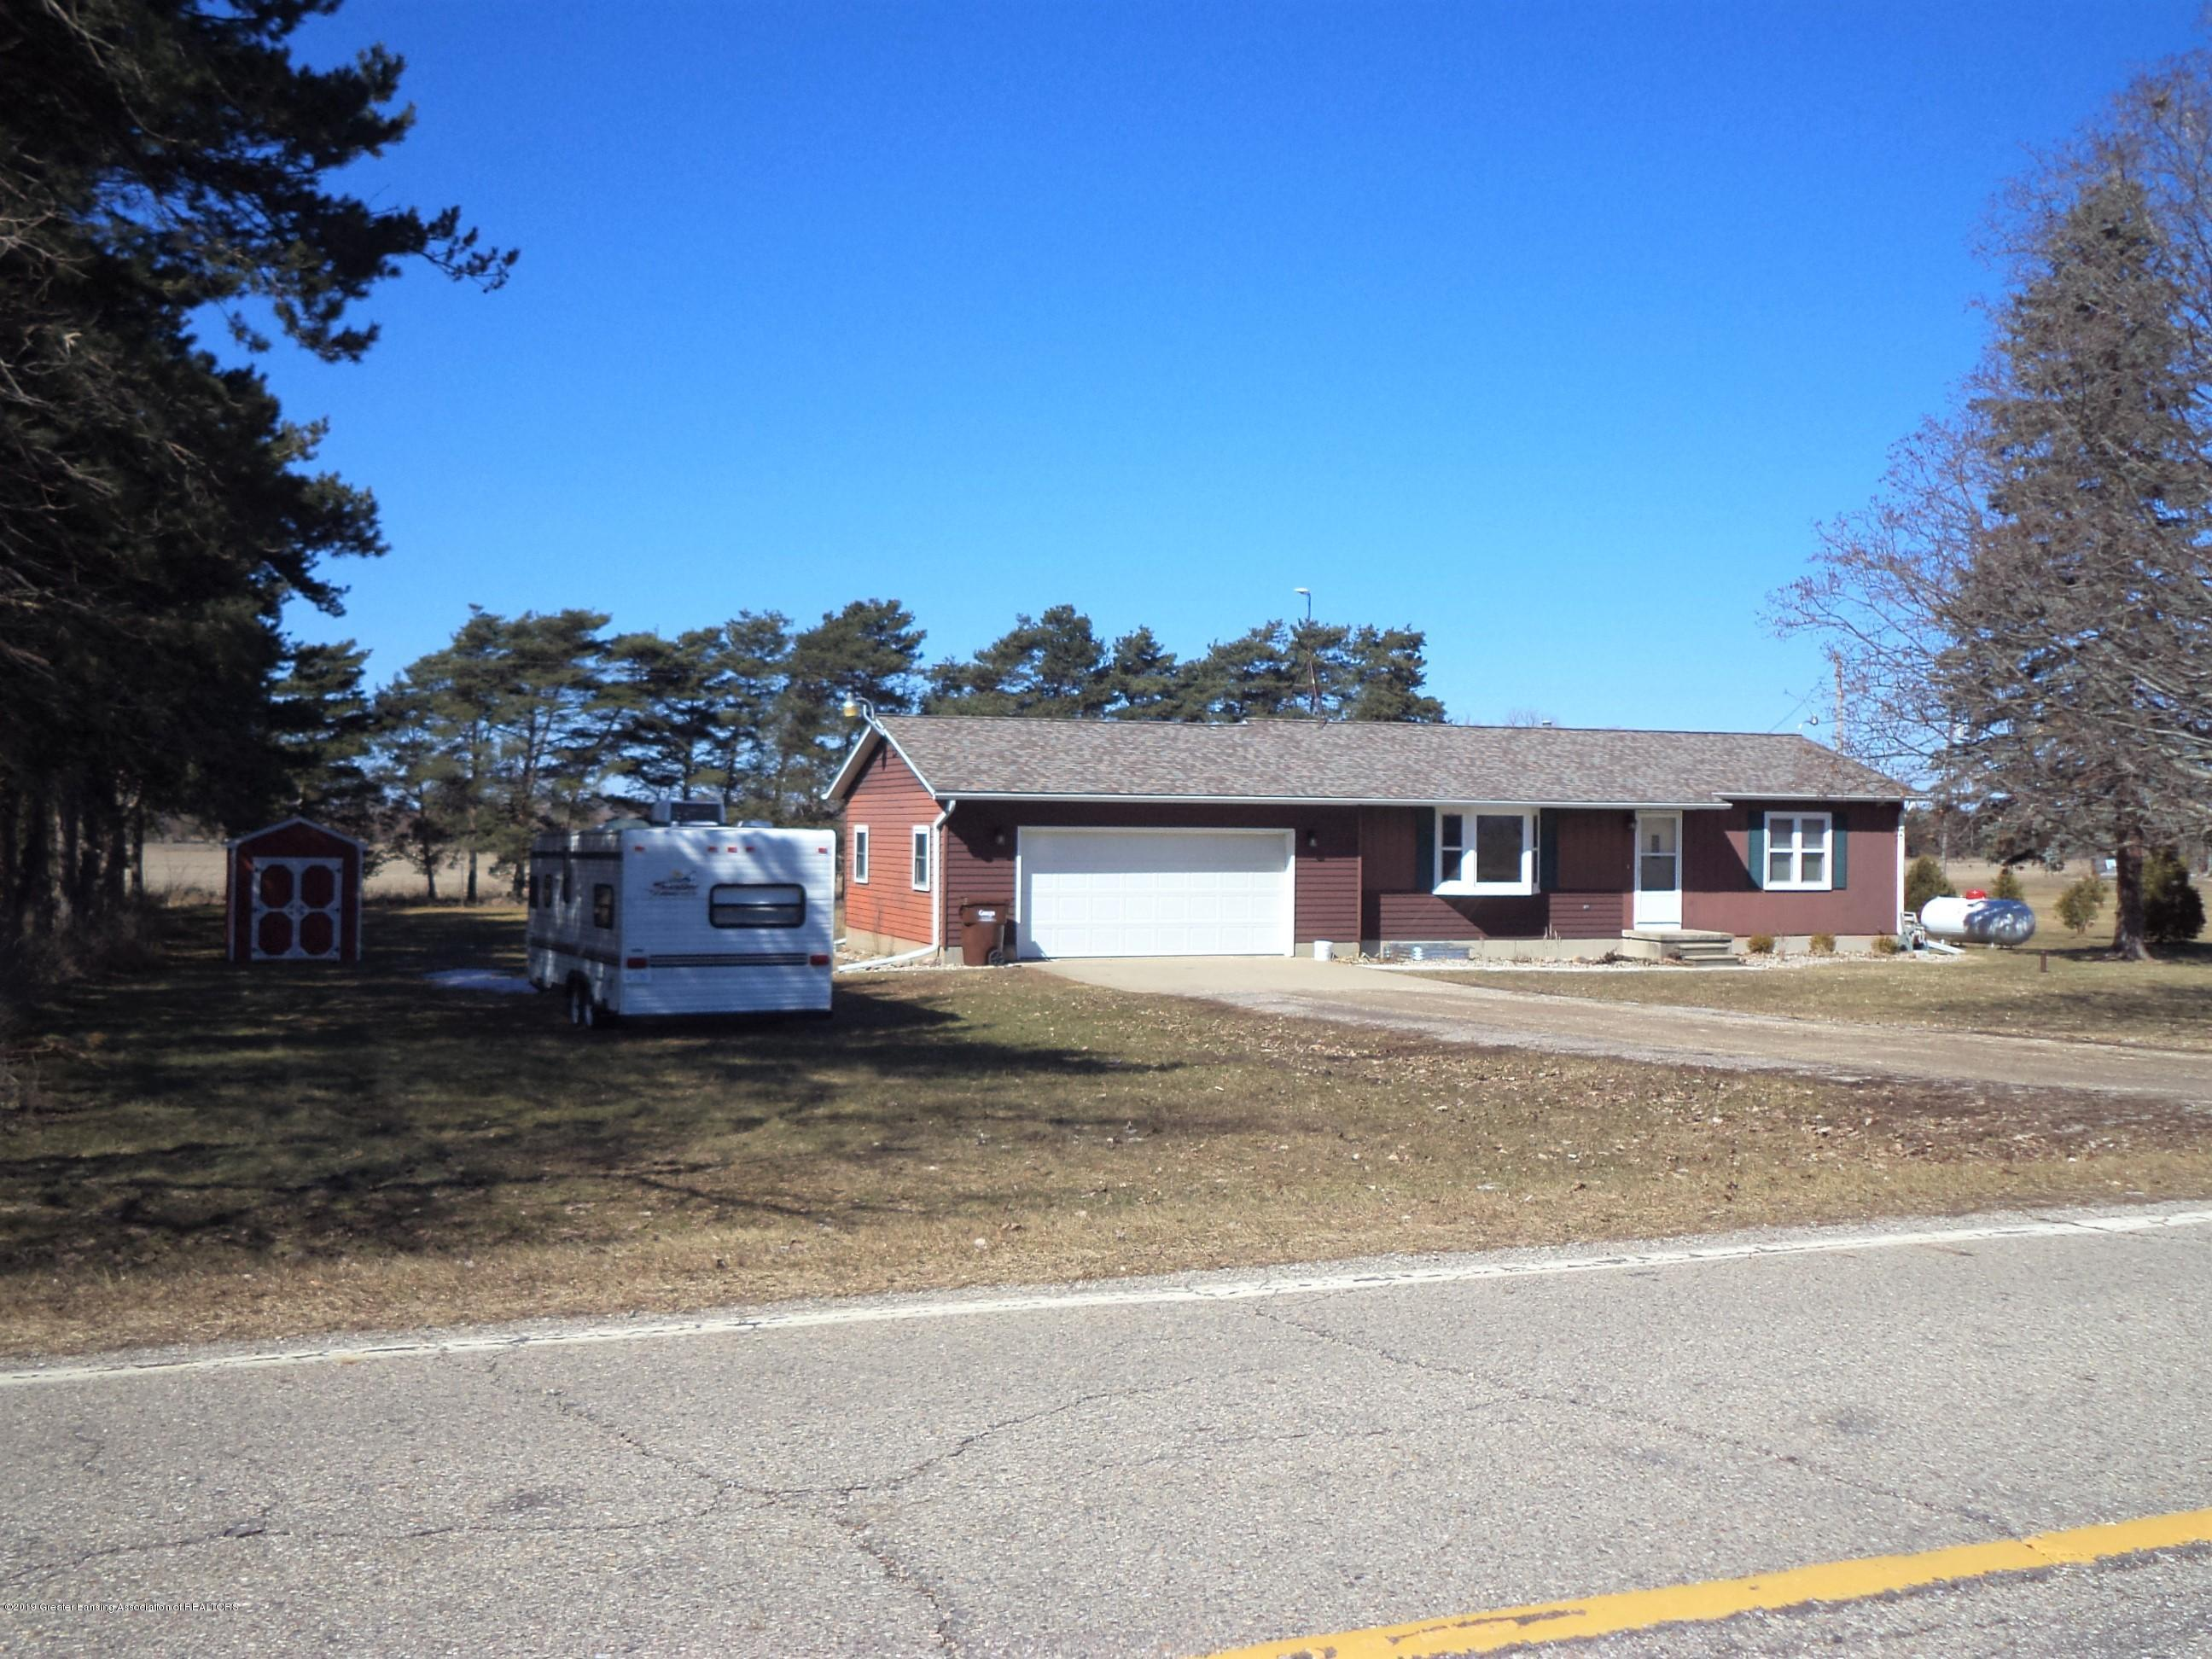 3753 N Krepps Rd - Front View - 1